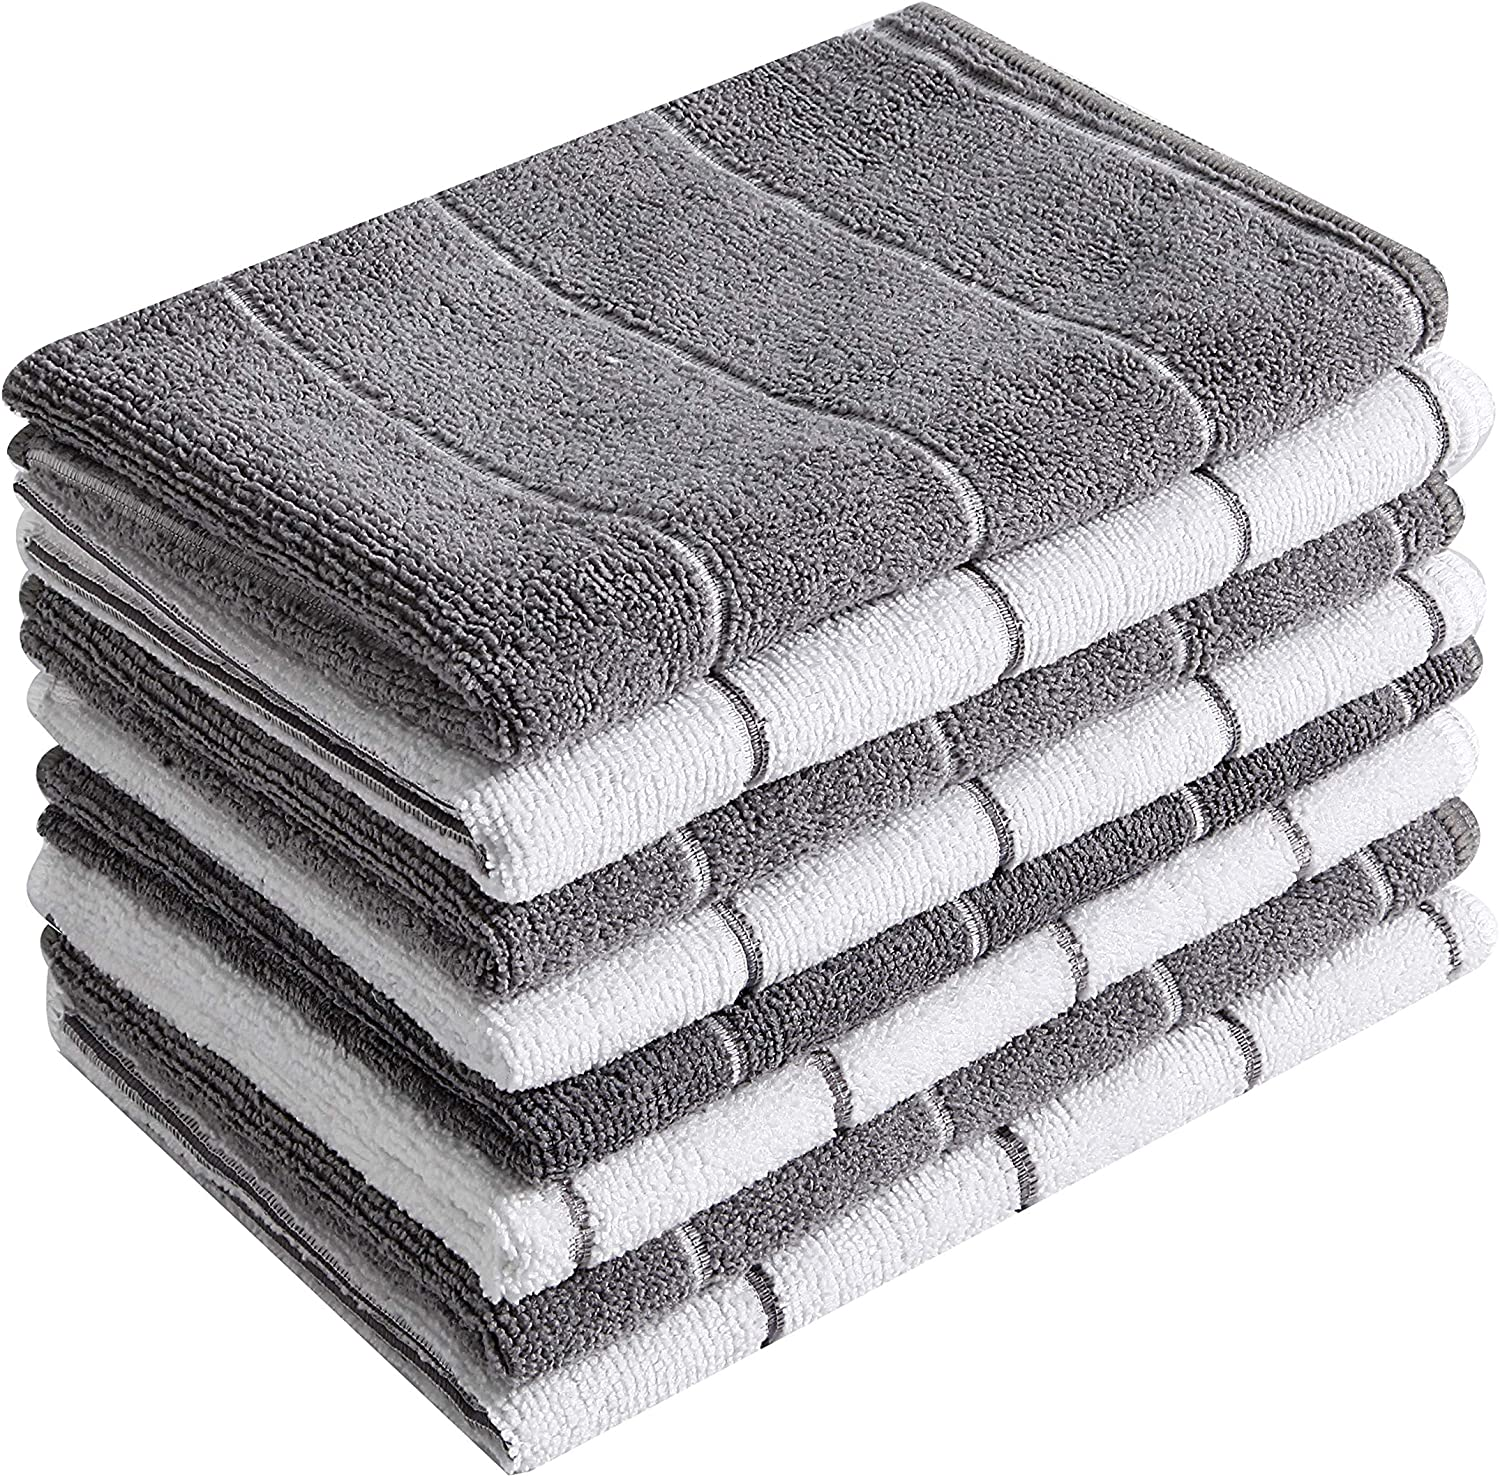 Microfiber Kitchen Towels - Super Absorbent, Soft and Solid Color Dish Towels, 8 Pack (Stripe Designed Grey and White Colors), 26 x 18 Inch